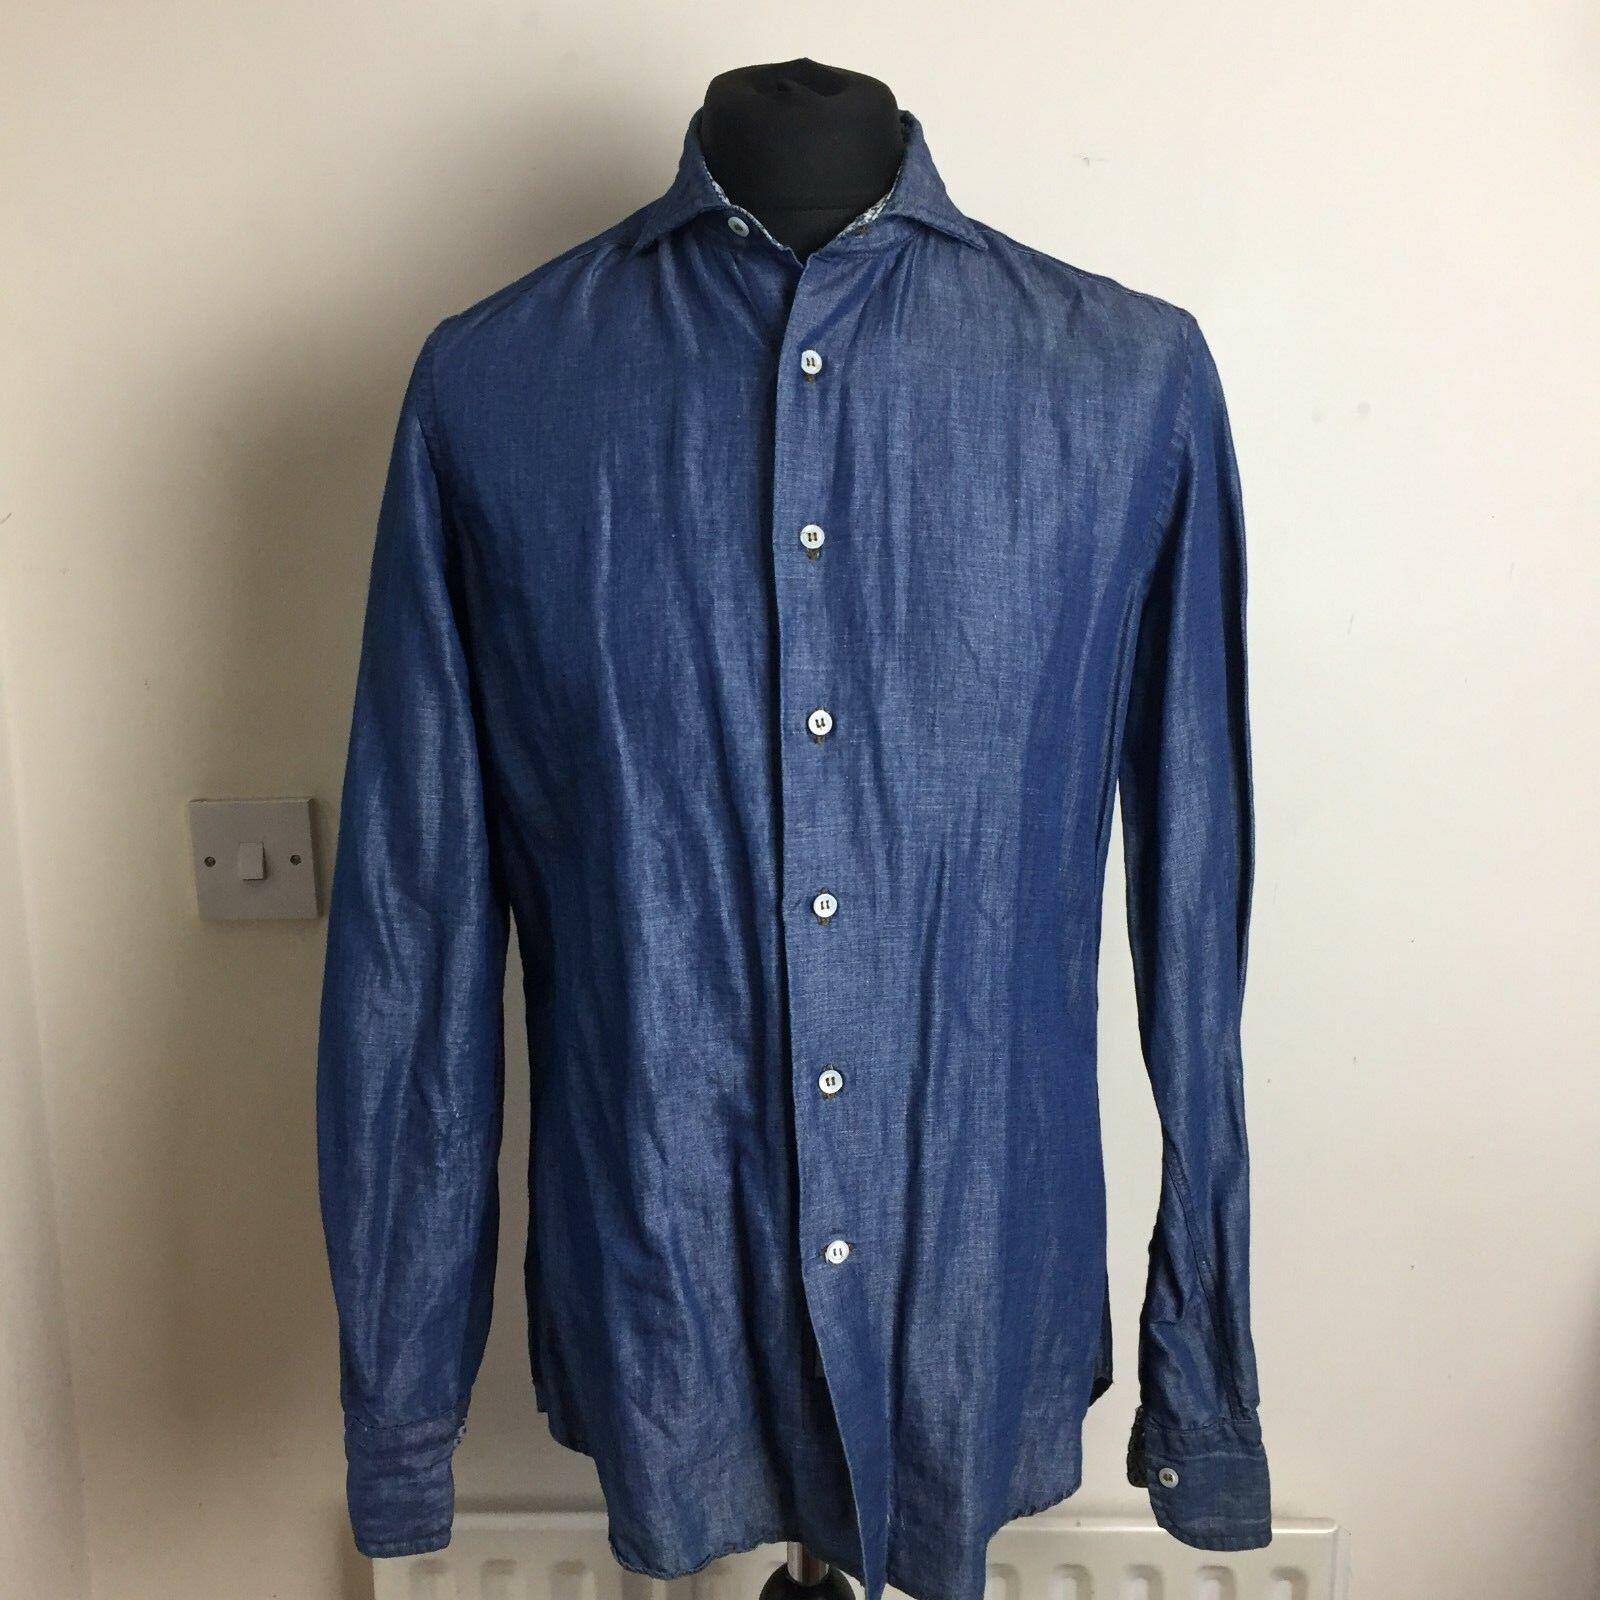 Denim looks men's shirt Cotton Linen size 41 16